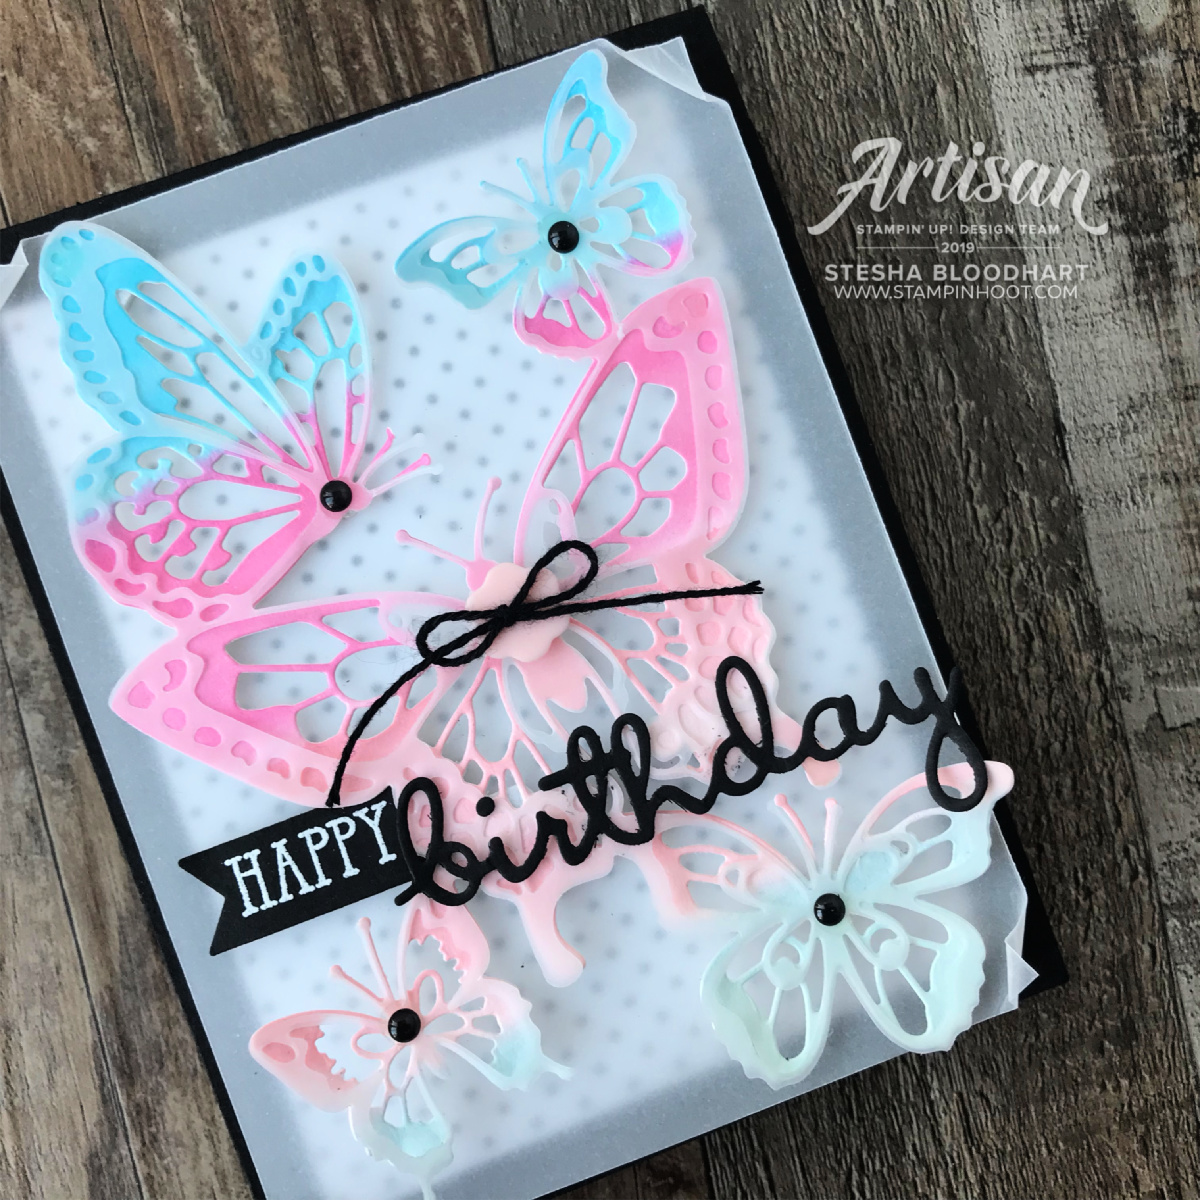 Beauty Abounds and Well Said Bundle by Stampin' Up! Birthday Card by Stesha Bloodhart Stampin' Hoot #tgifc200